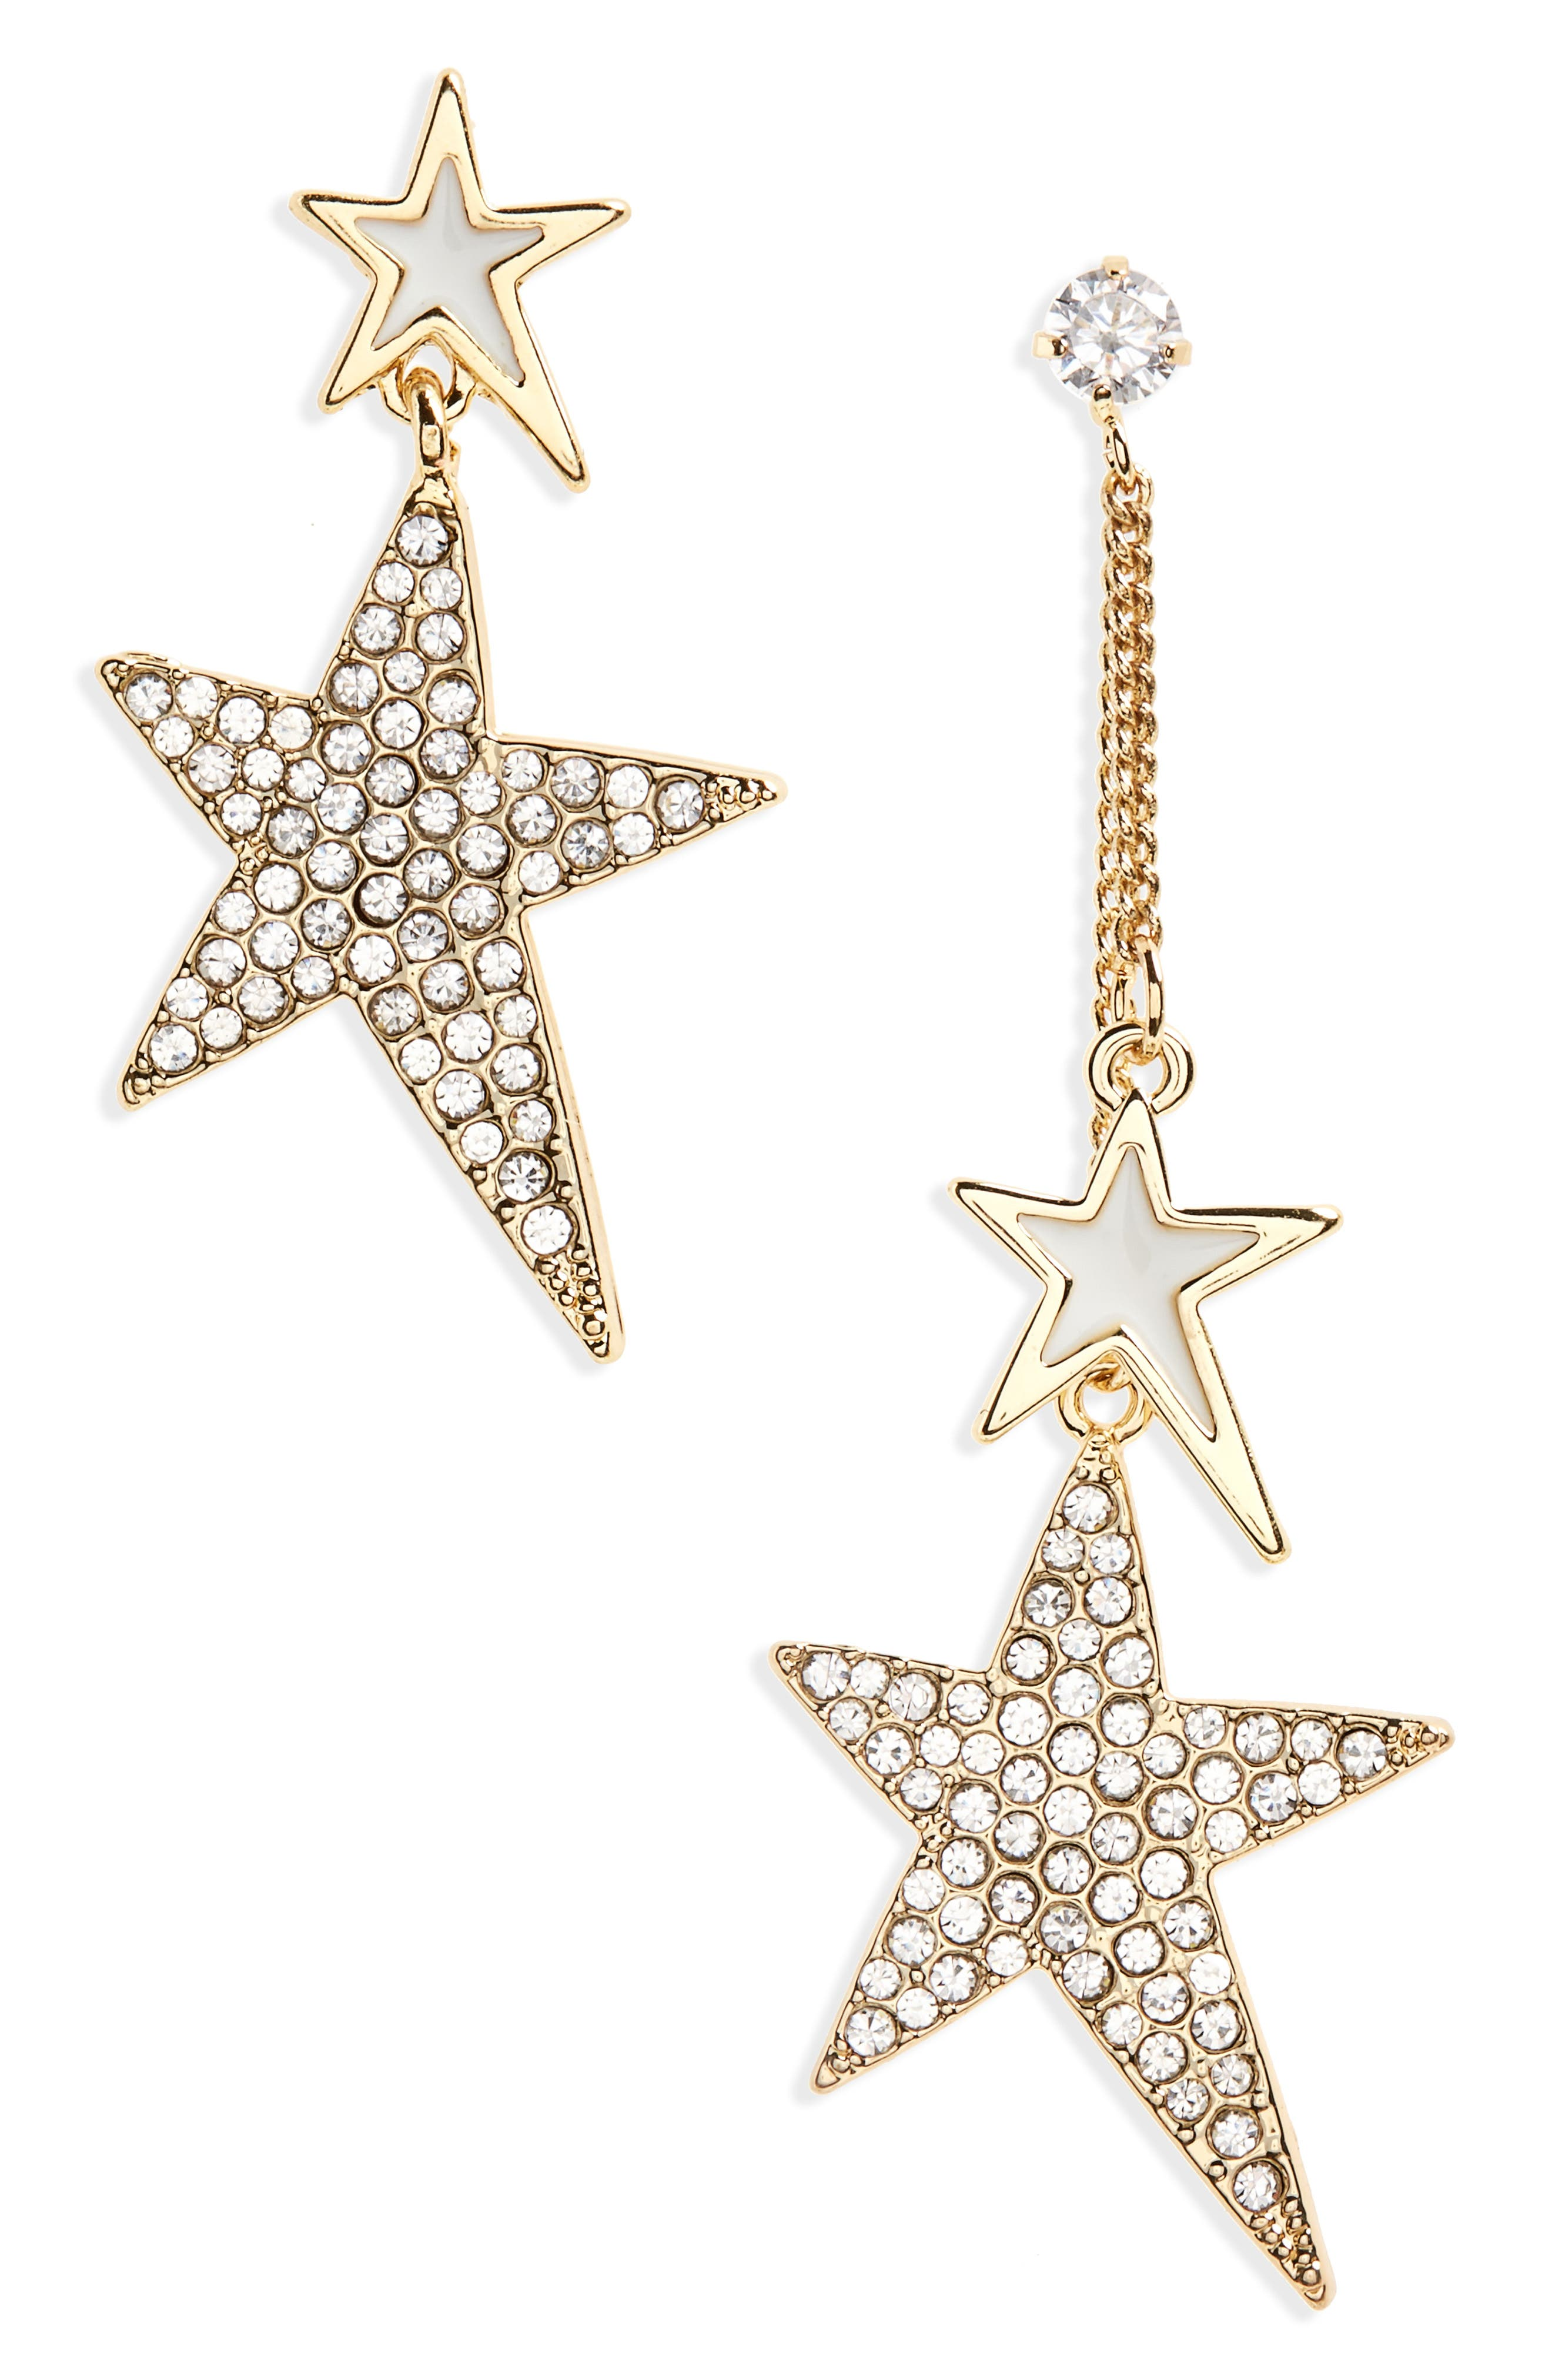 Crystal Star Statement Earrings,                             Main thumbnail 1, color,                             710